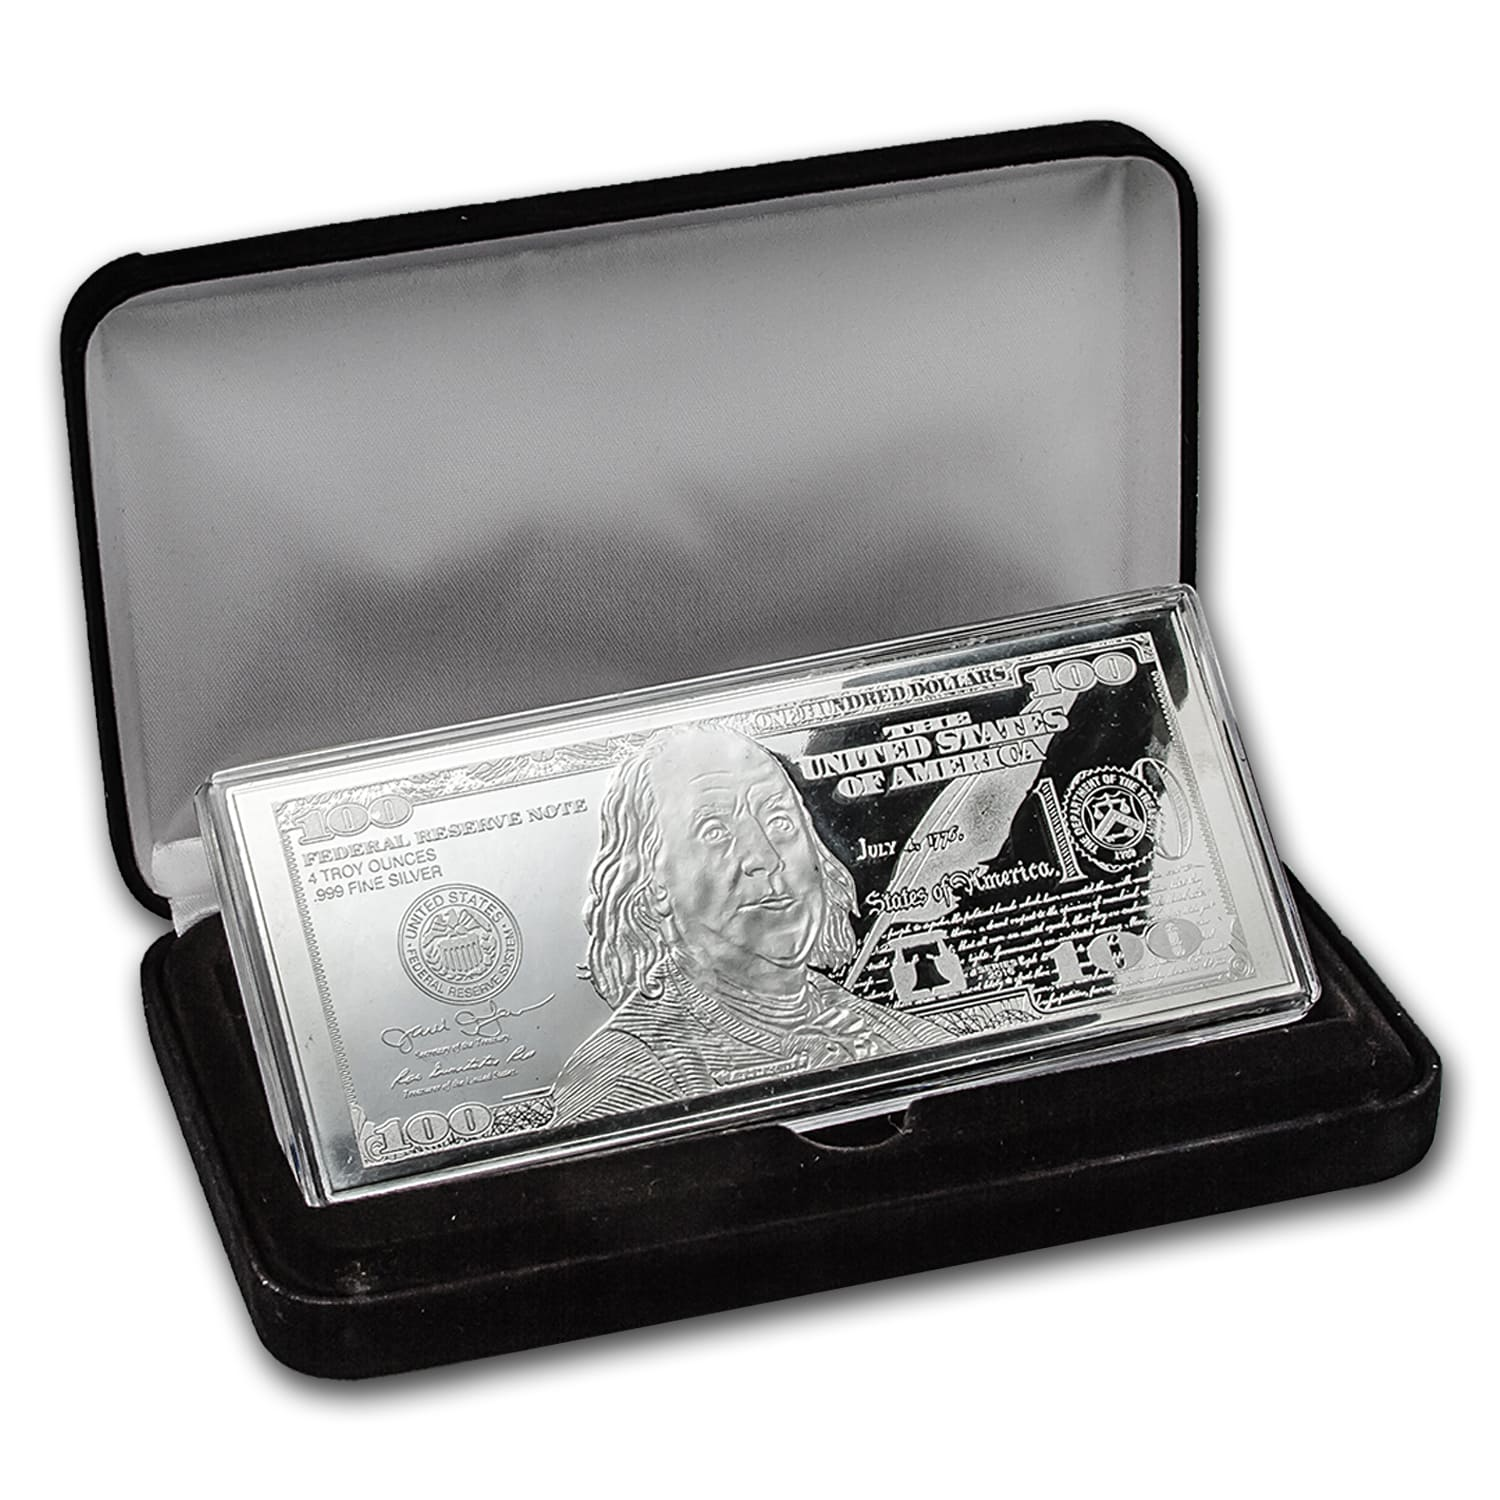 4 oz Silver Bar - 2016 $100 Bill (W/Box & COA)